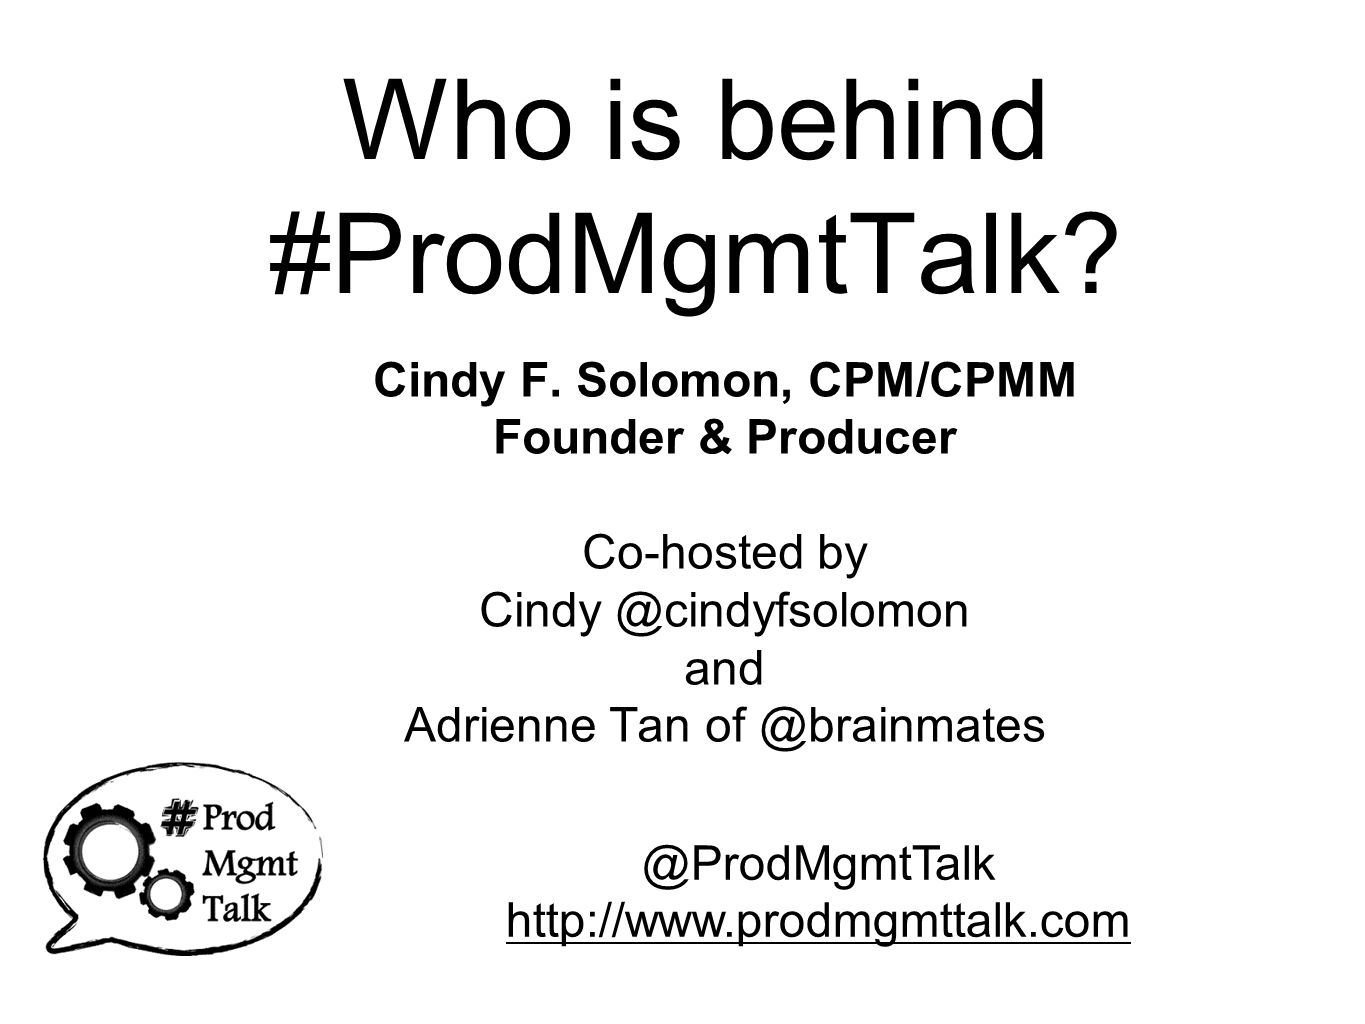 Search Twitter Search Twitter (Search.Twitter.com) for #ProdMgmtTalk to view a real-time chronological order of tweets demarcated as #ProdMgmtTalkSearch.Twitter.com (be sure to include the # symbol).